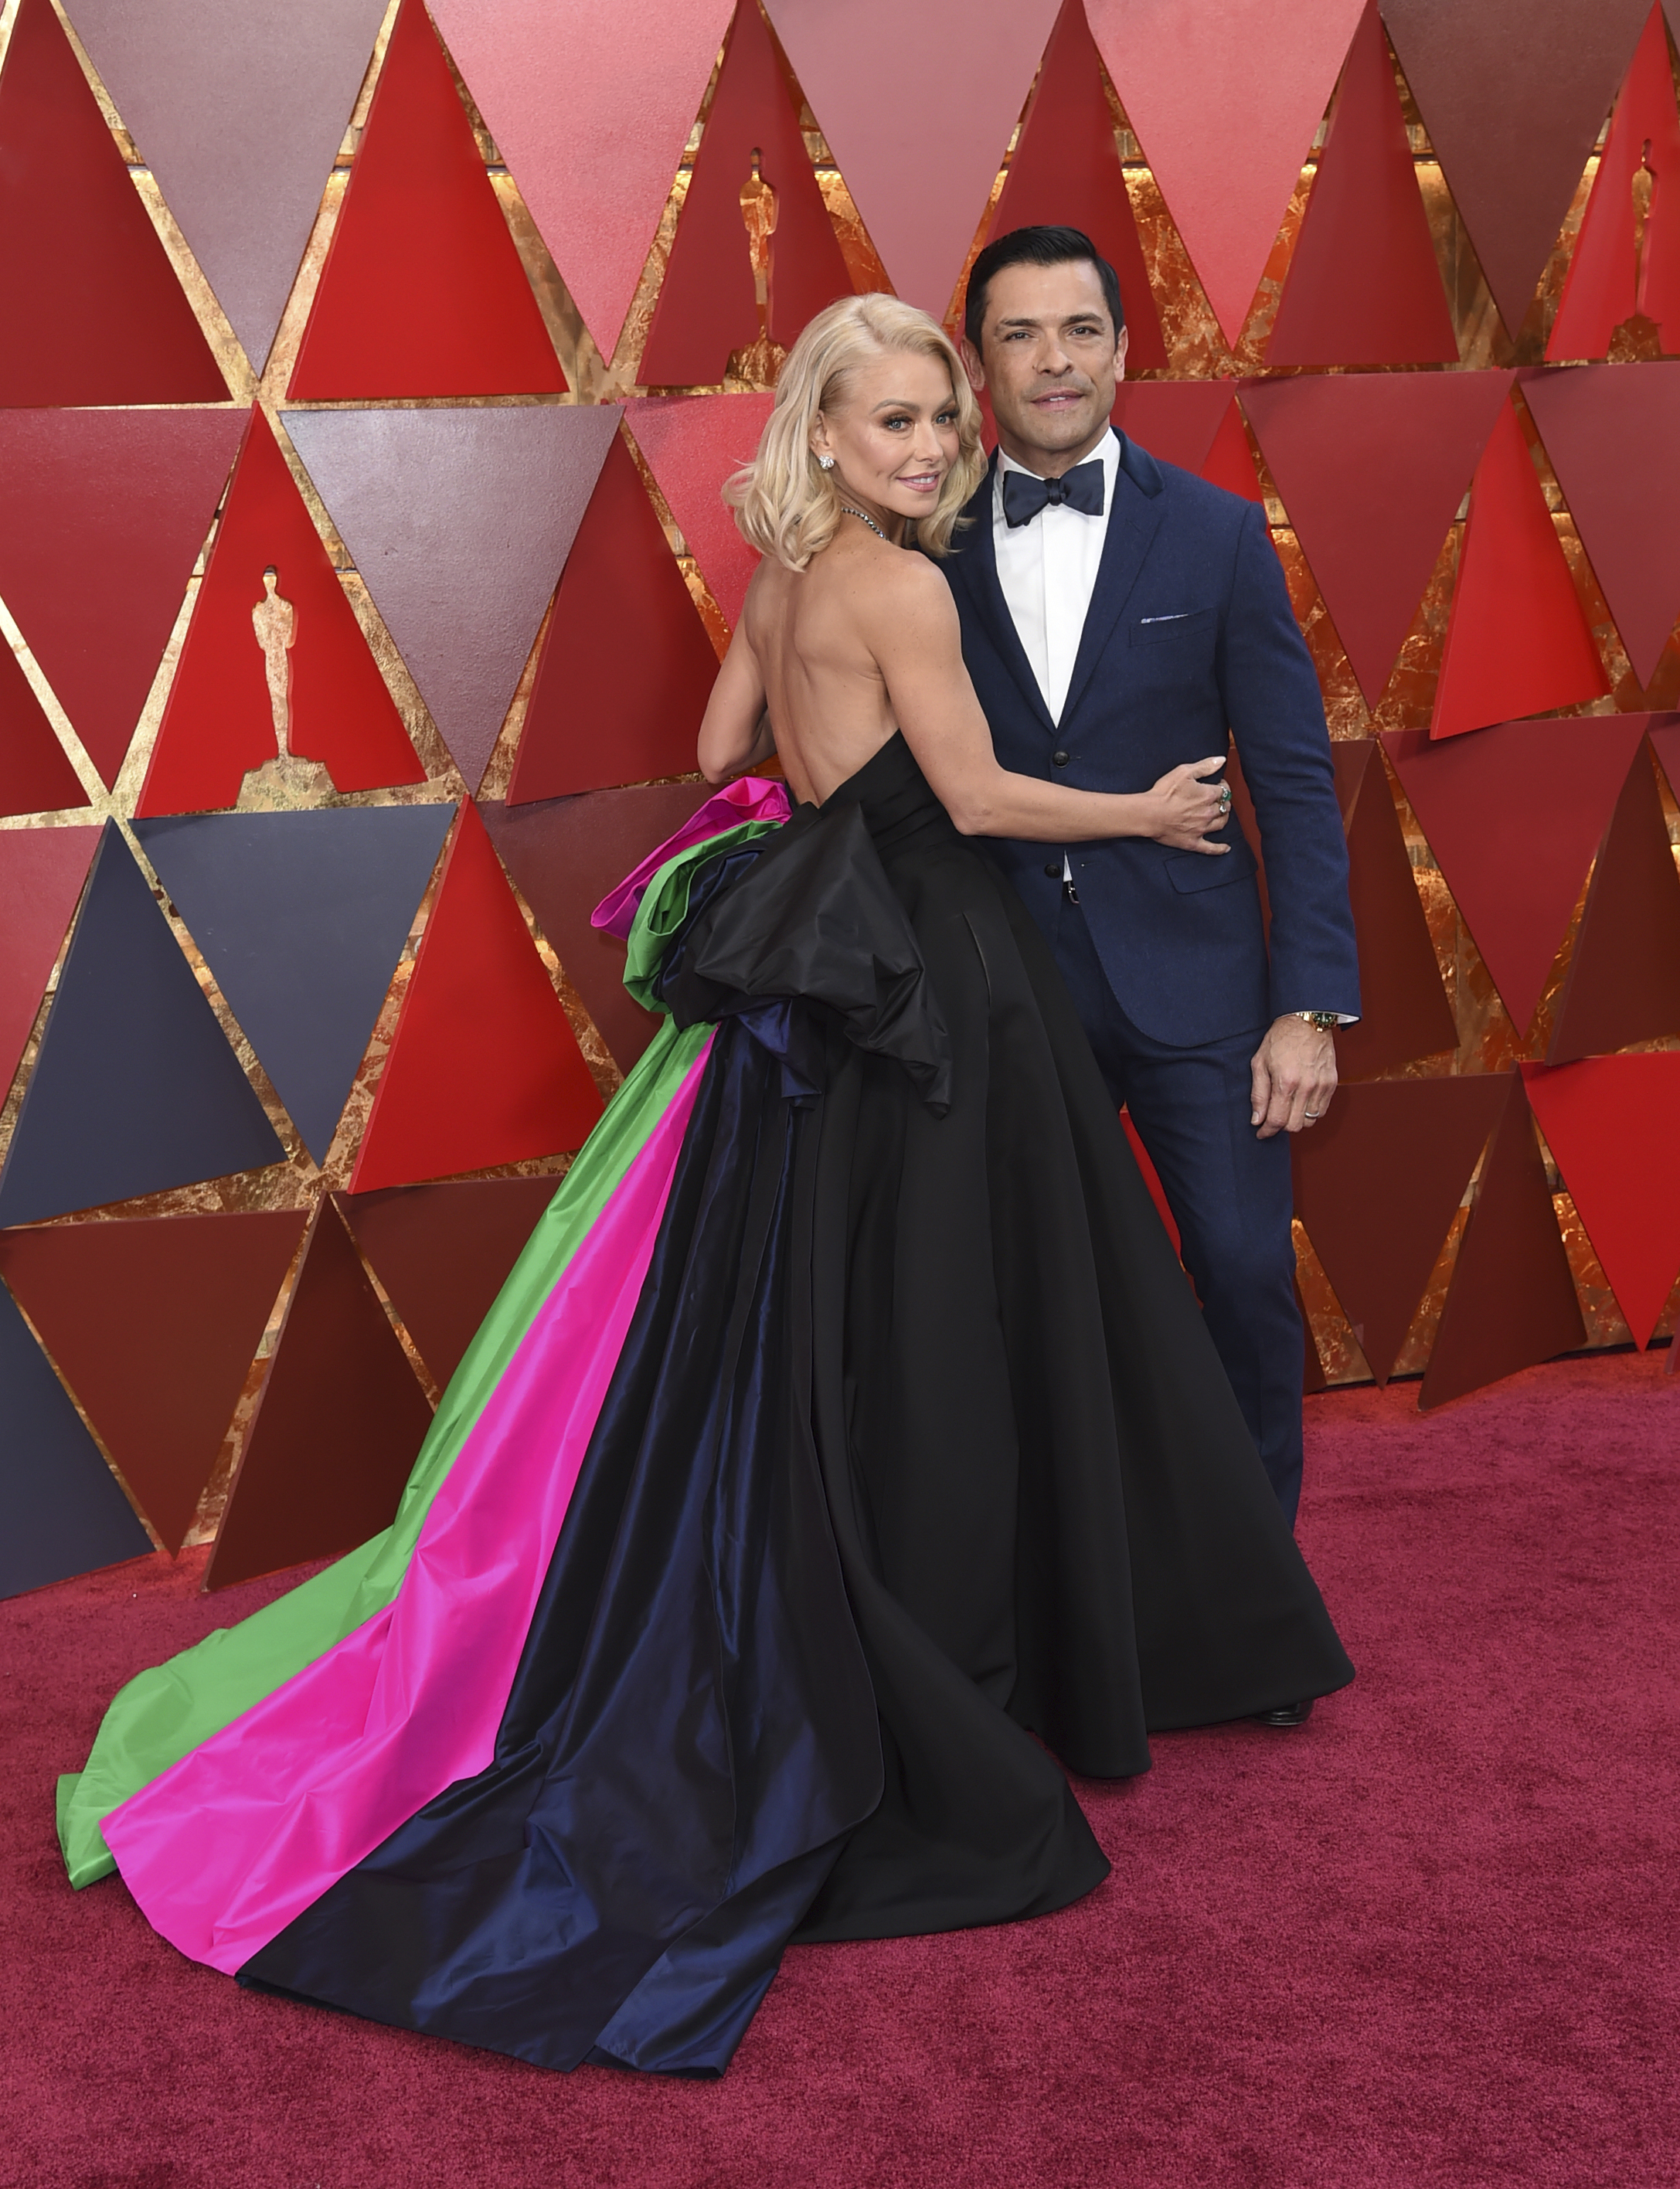 "<div class=""meta image-caption""><div class=""origin-logo origin-image none""><span>none</span></div><span class=""caption-text"">Kelly Ripa, left, and Mark Consuelos arrive at the Oscars on Sunday, March 4, 2018, at the Dolby Theatre in Los Angeles. (Richard Shotwell/Invision/AP)</span></div>"